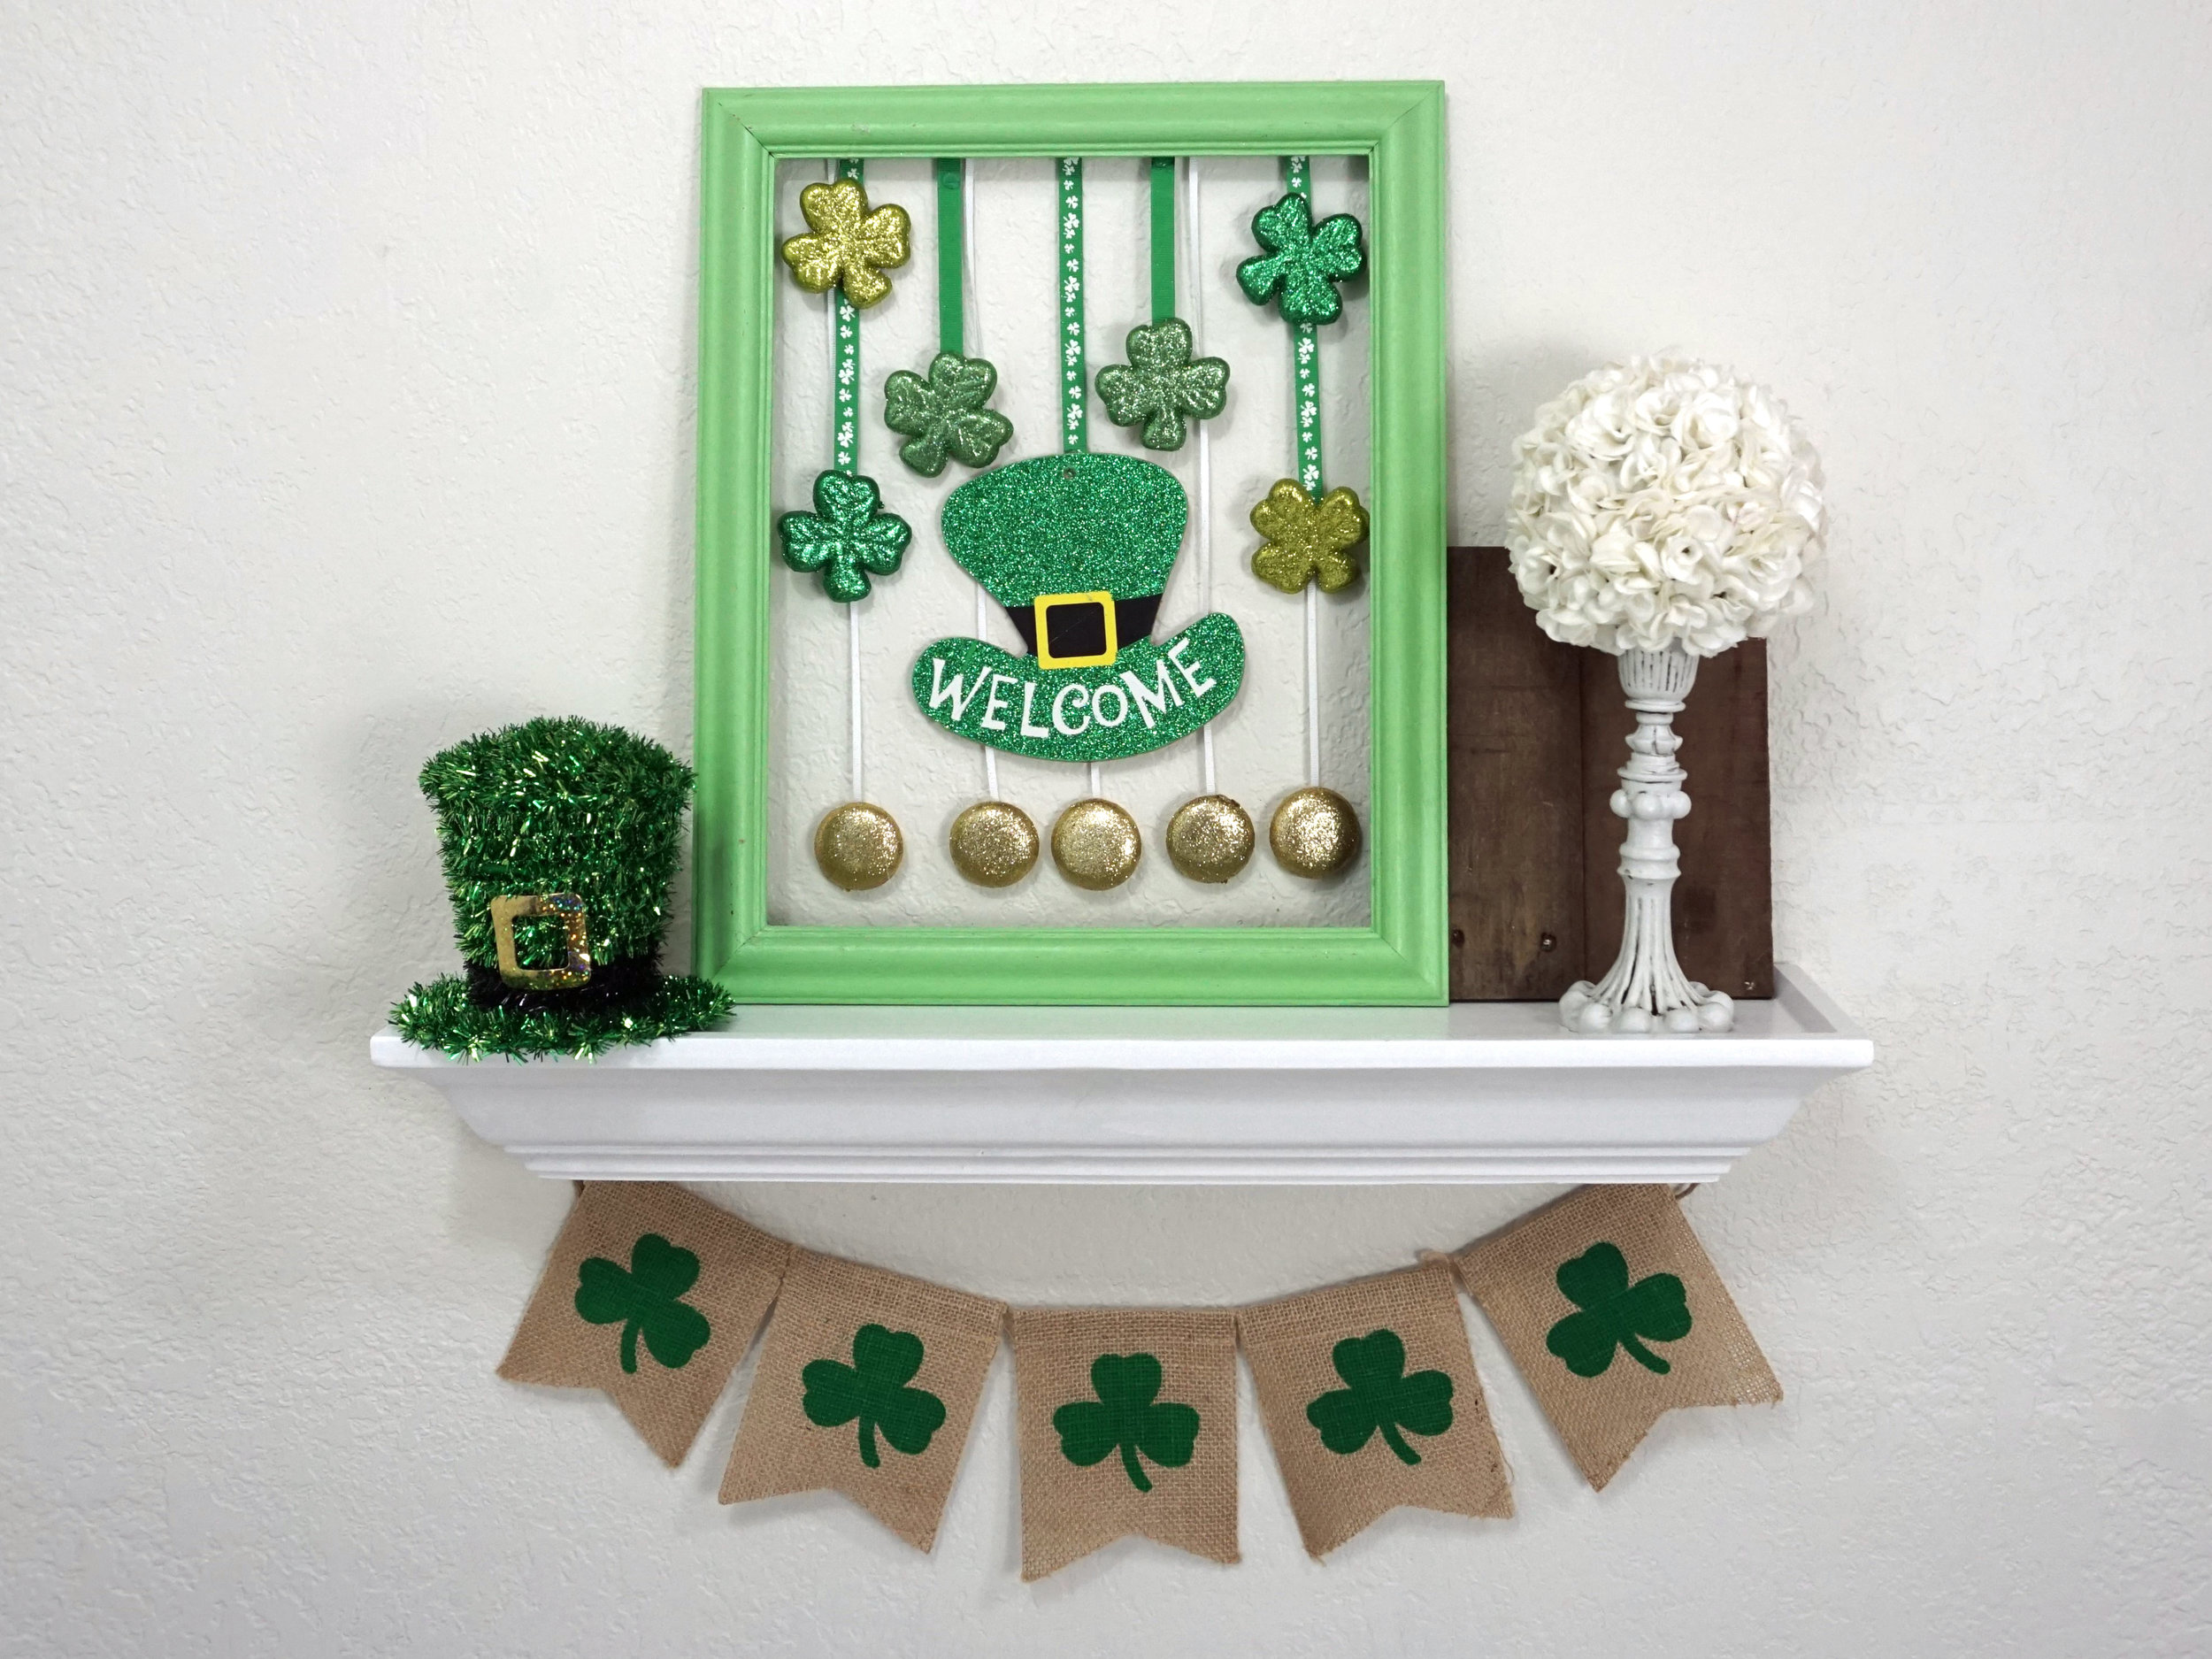 st.pattys decor.jpg